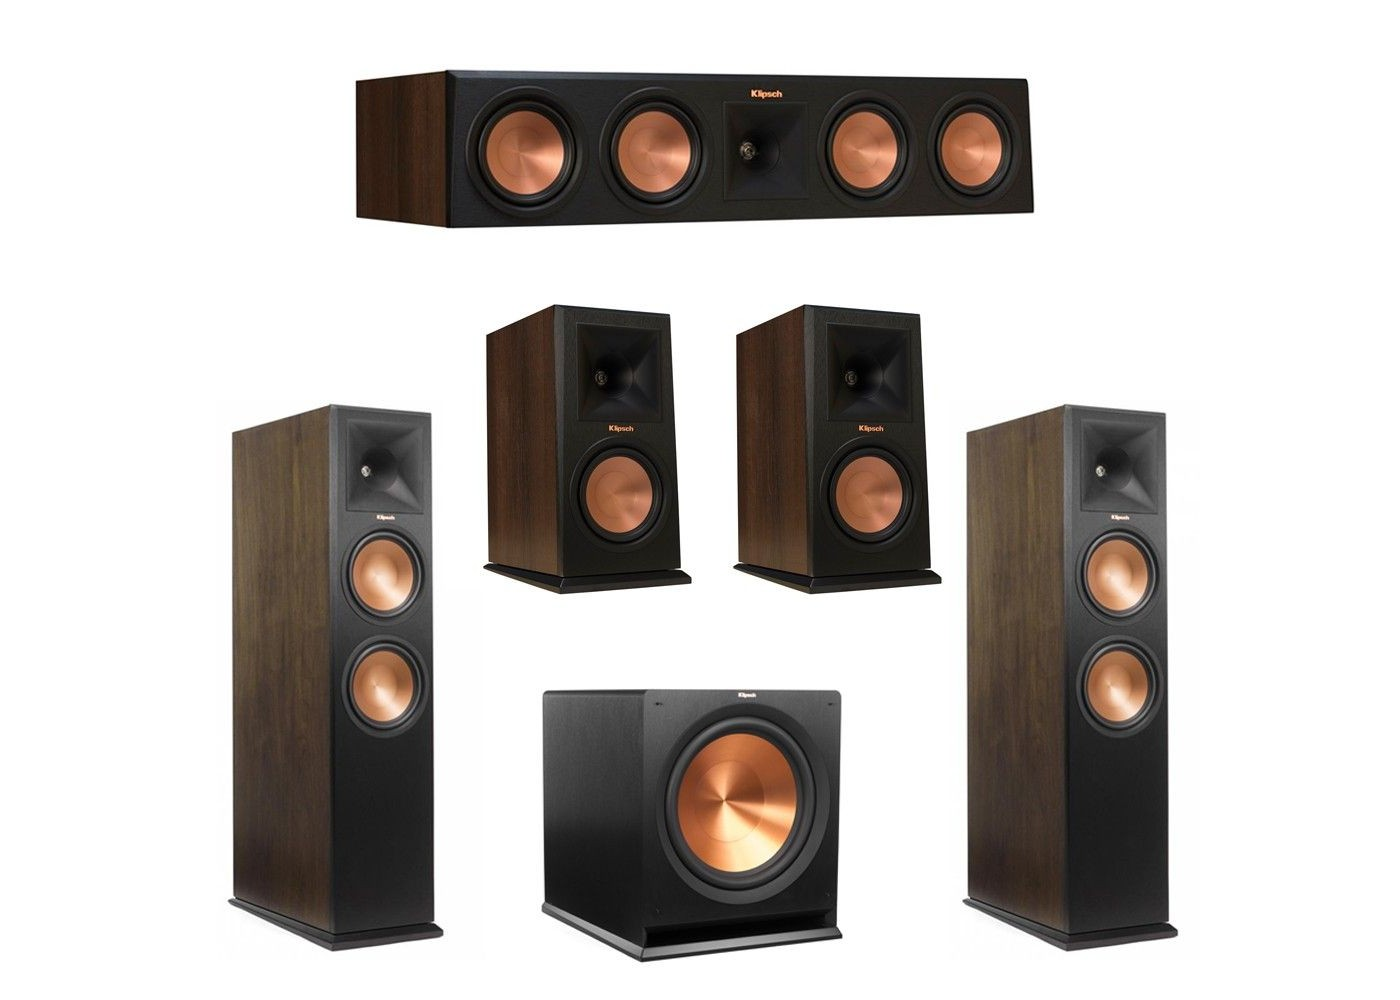 walnut 5.1 system with 2 rp-280fa tower speakers, 1 rp-450c center